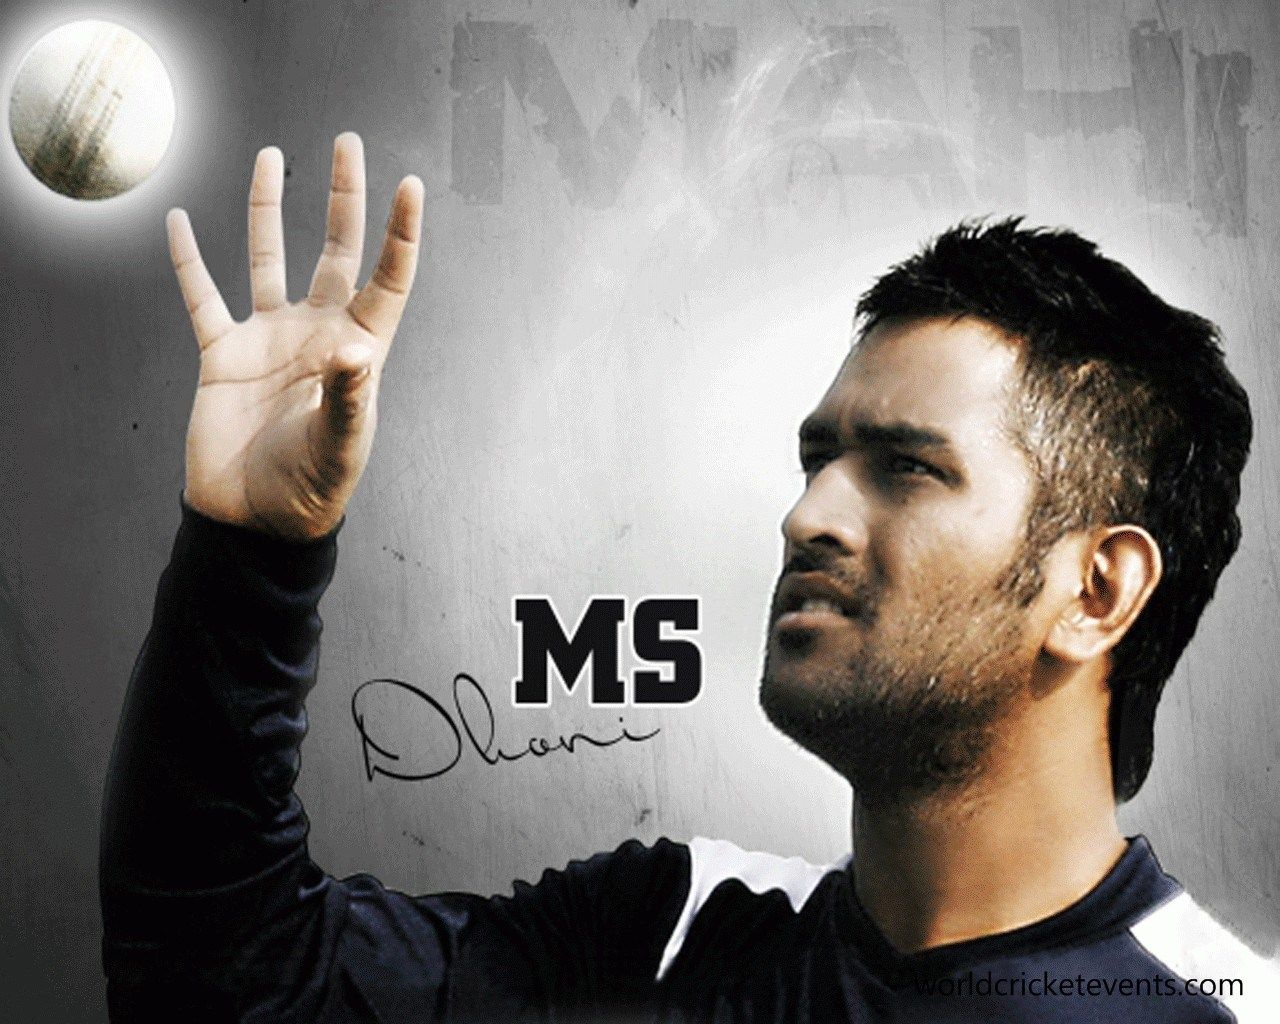 Ms dhoni net worth and earning with cars images a sports news - Ms Dhoni Free Hd Wallpapers For Desktop Http Worldcricketevents Com Ms